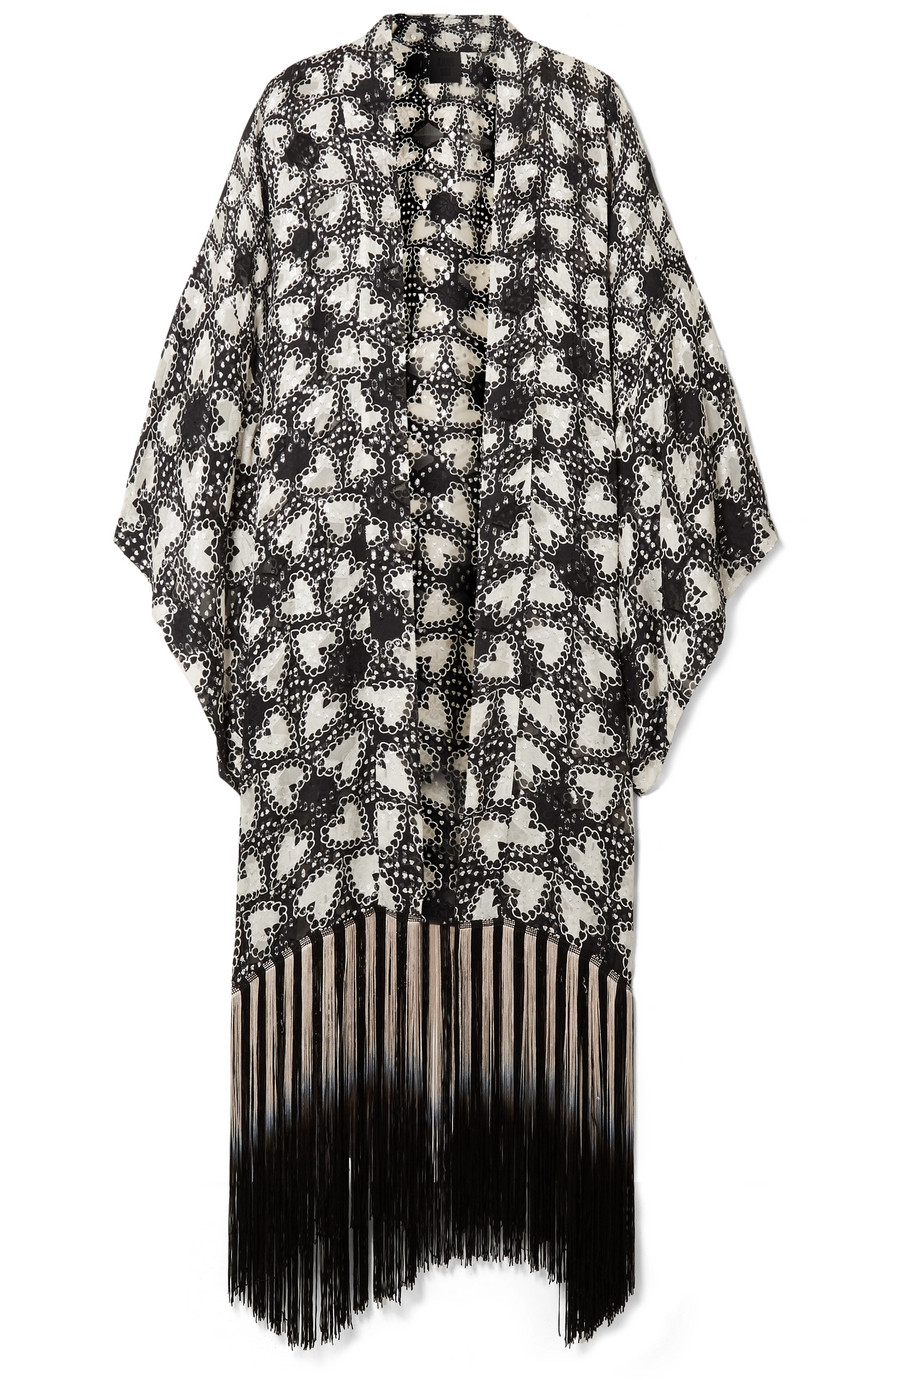 Anna Sui - Chasing Hearts Fringed Metallic Fil Coupé Silk-blend Chiffon Kimono - Black $600  - AT NET-A-PORTER